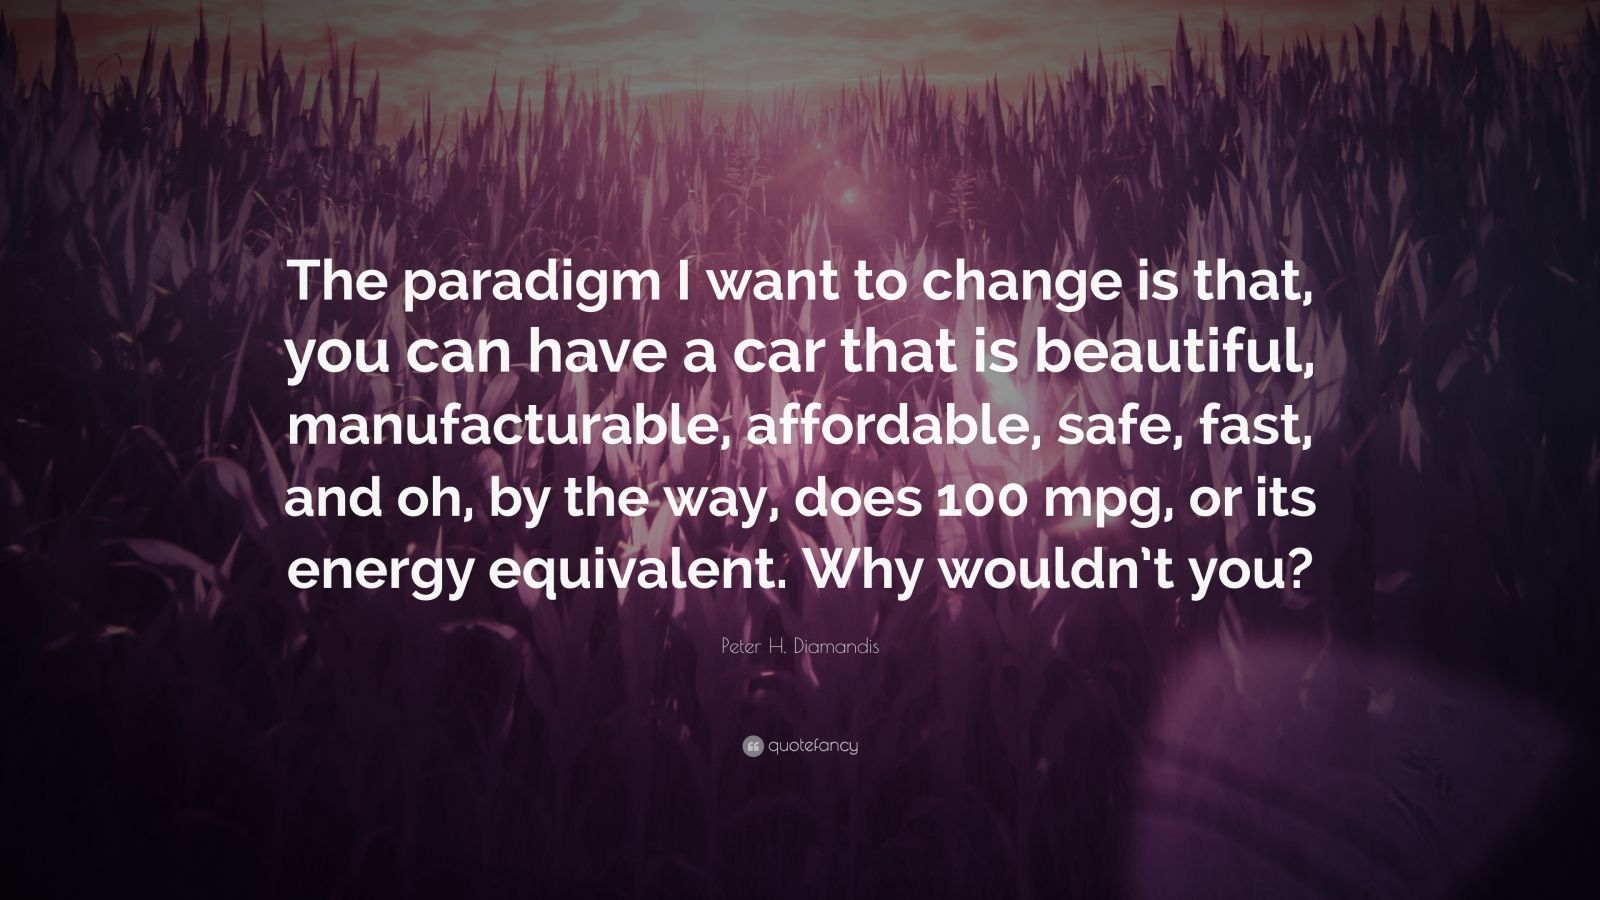 "Peter H. Diamandis Quote: ""The paradigm I want to change is that, you can have a car that is beautiful, manufacturable, affordable, safe, fast, and oh, by the way, does 100 mpg, or its energy equivalent. Why wouldn't you?"""